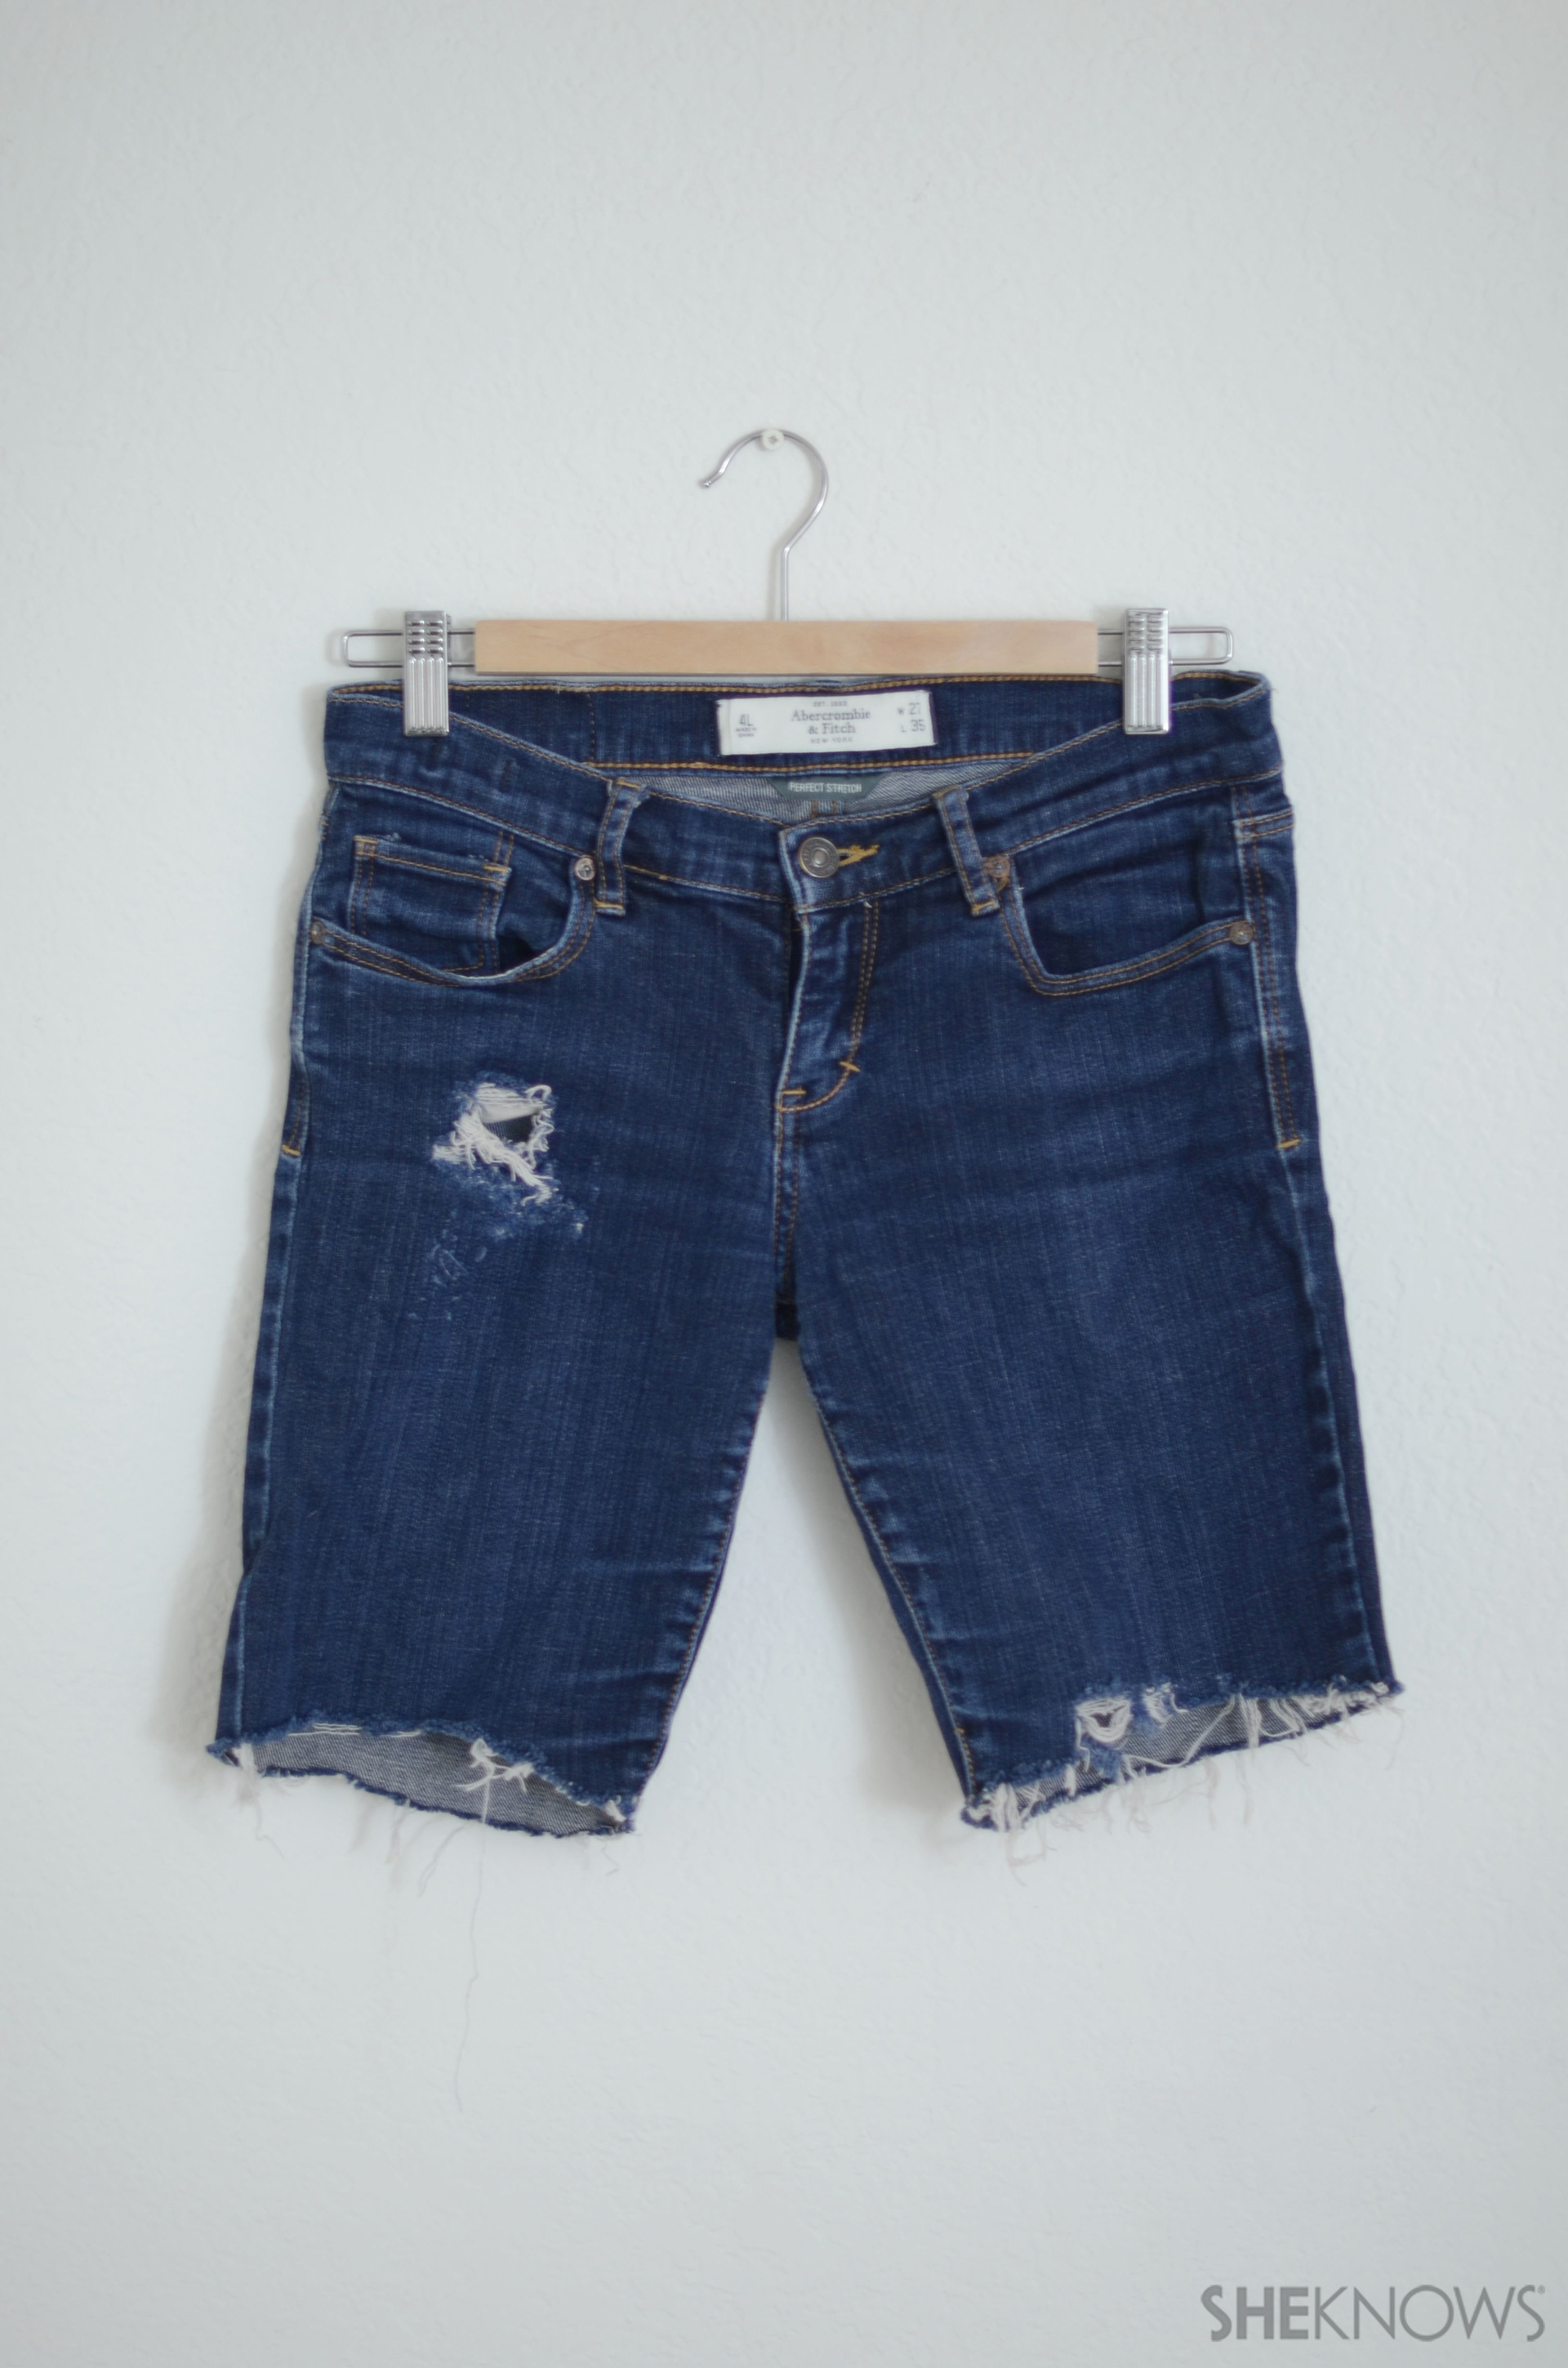 DIY Jeans to Shorts Upcycle